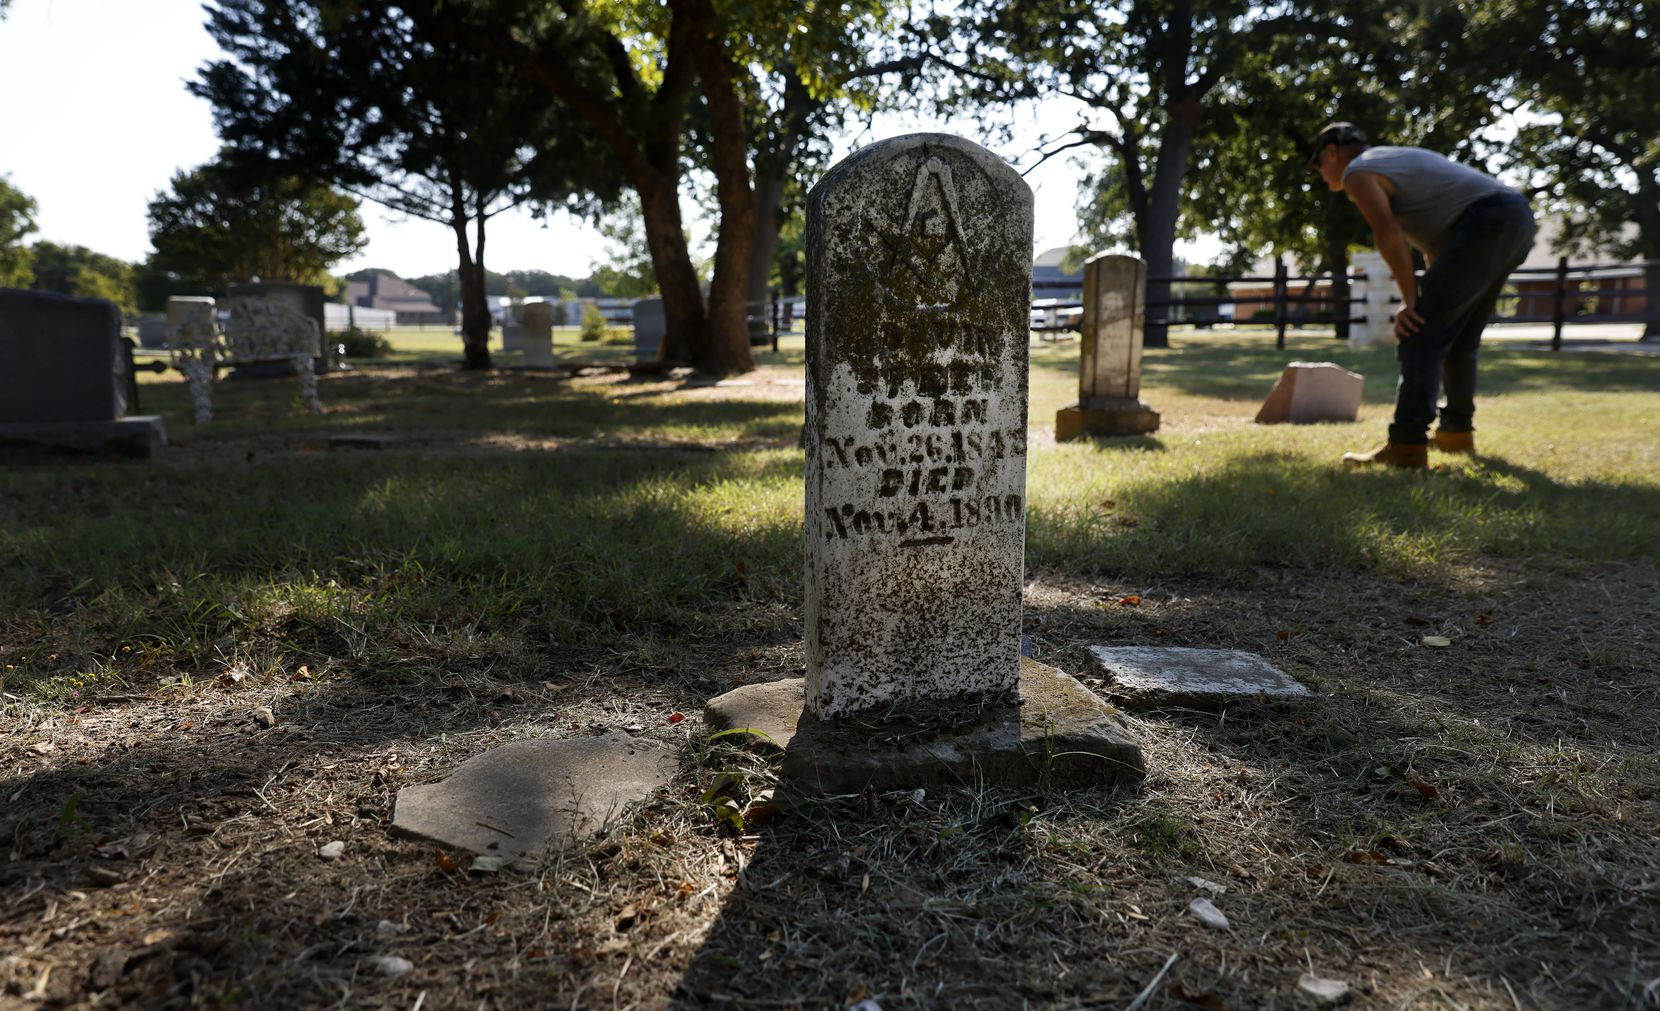 Old gravestones from the 19th century are part of the historic Lonesome Dove Cemetery in Southlake, Texas,